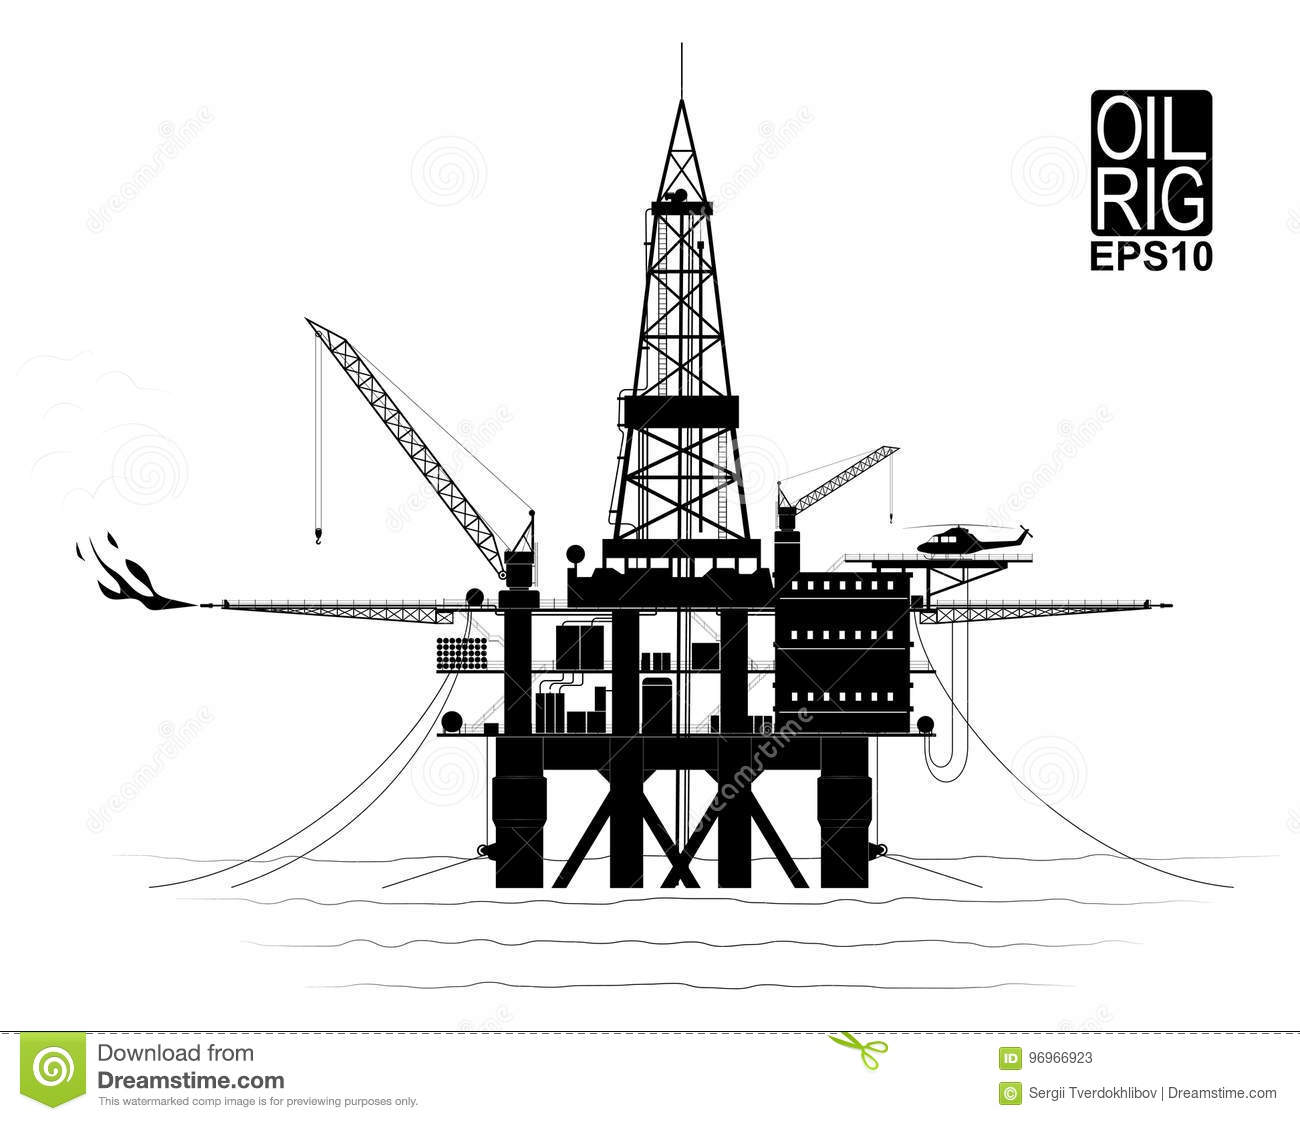 Drilling Platform For Oil Or Gas Production From The Ocean